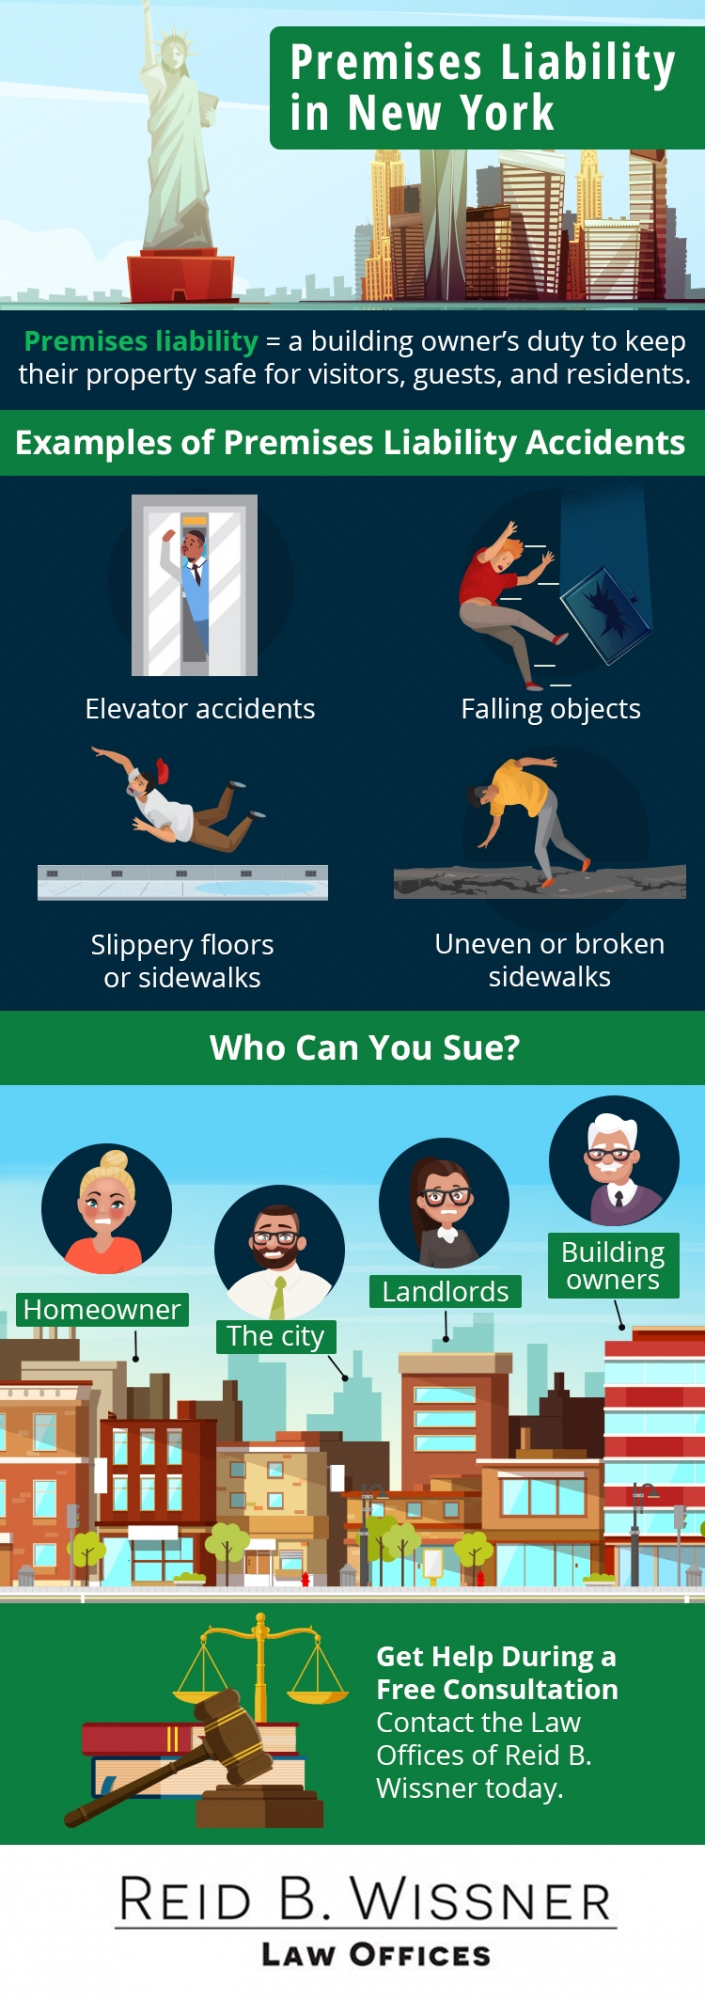 Premises liability in new york infographic